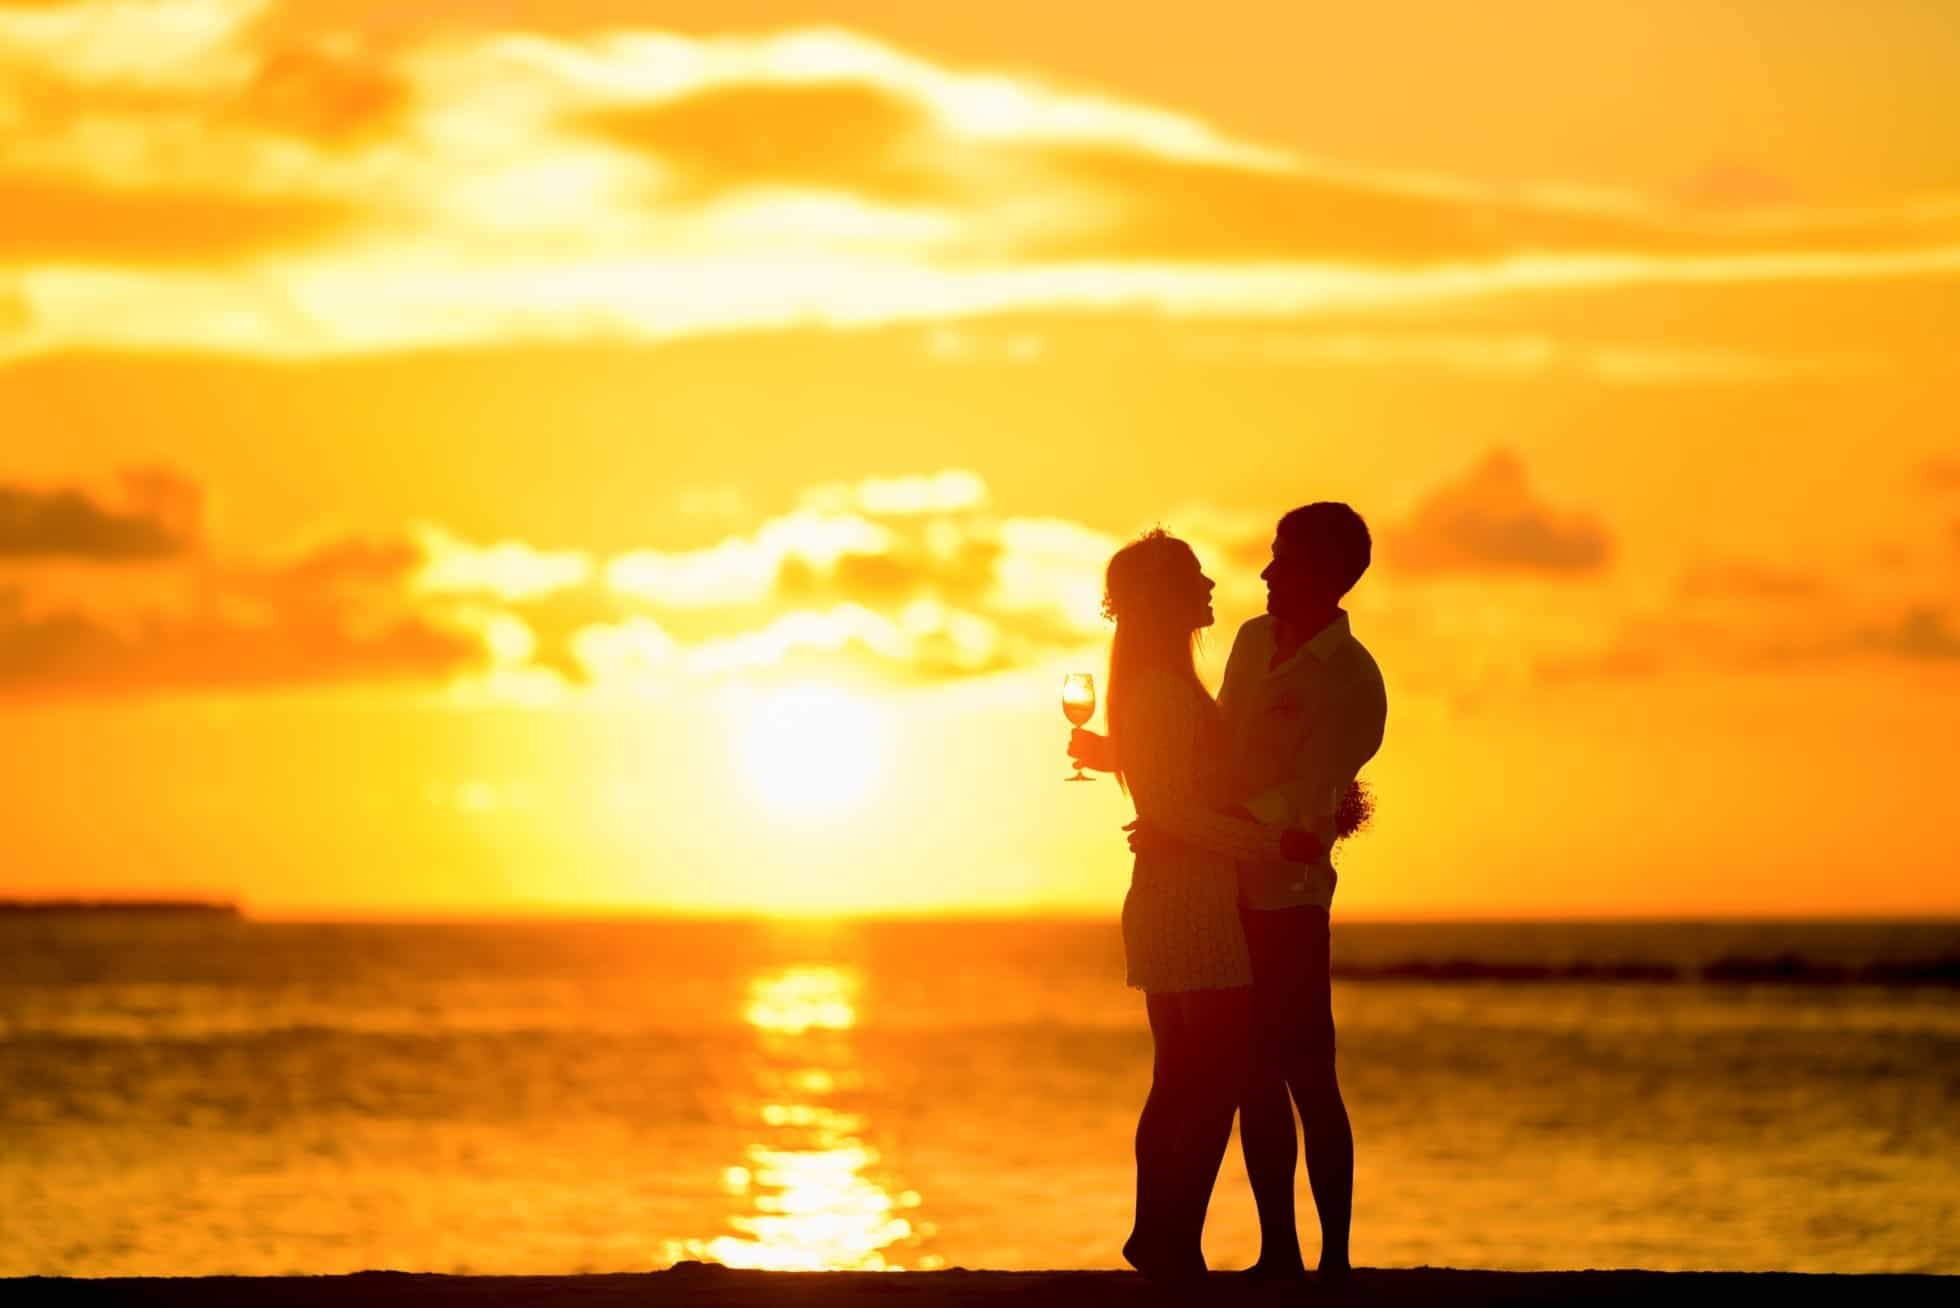 Man Hugging His Wife On The Beach During a Lovely Sunset